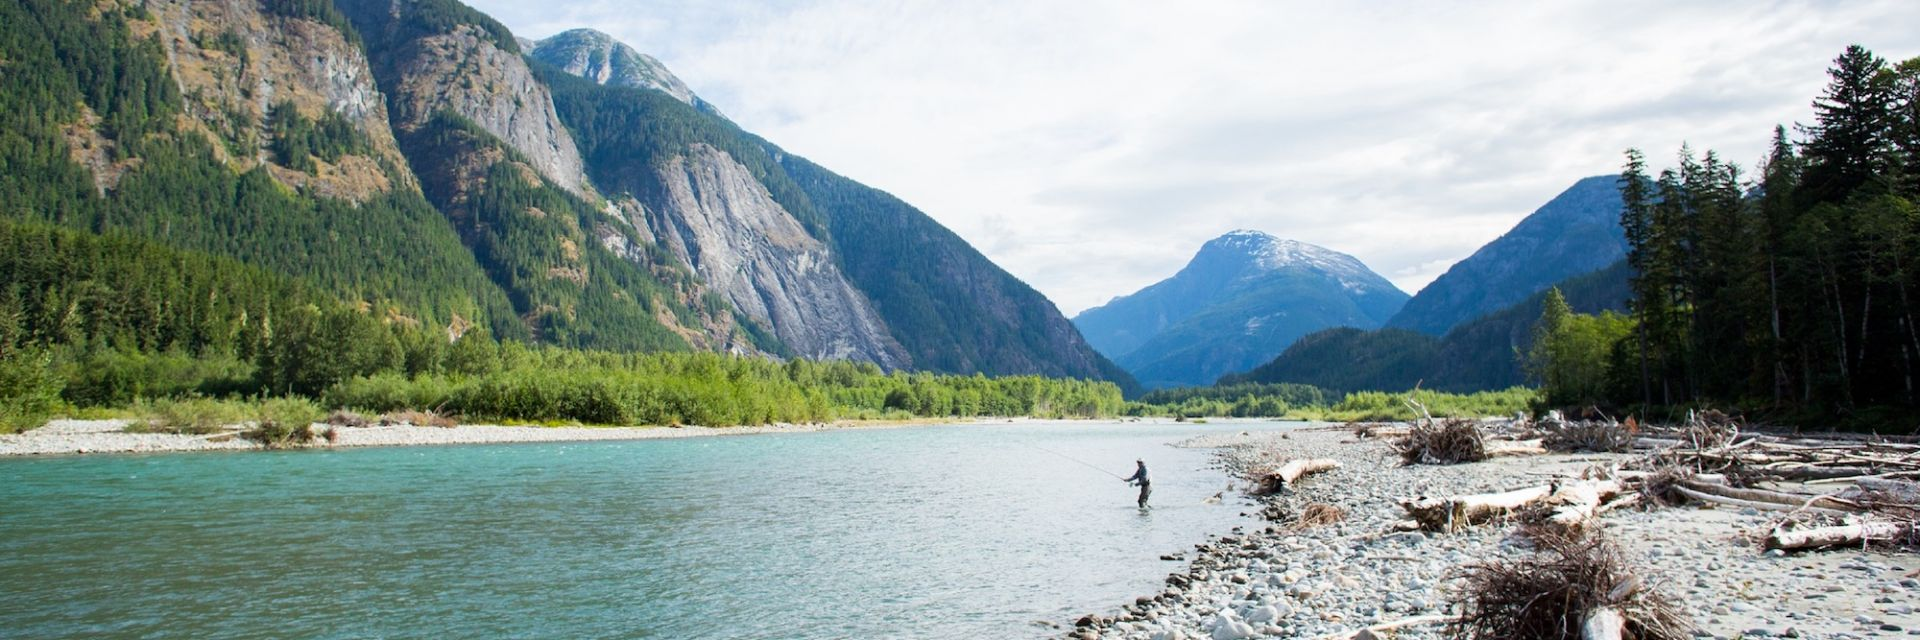 Fly Fishing in Northern BC